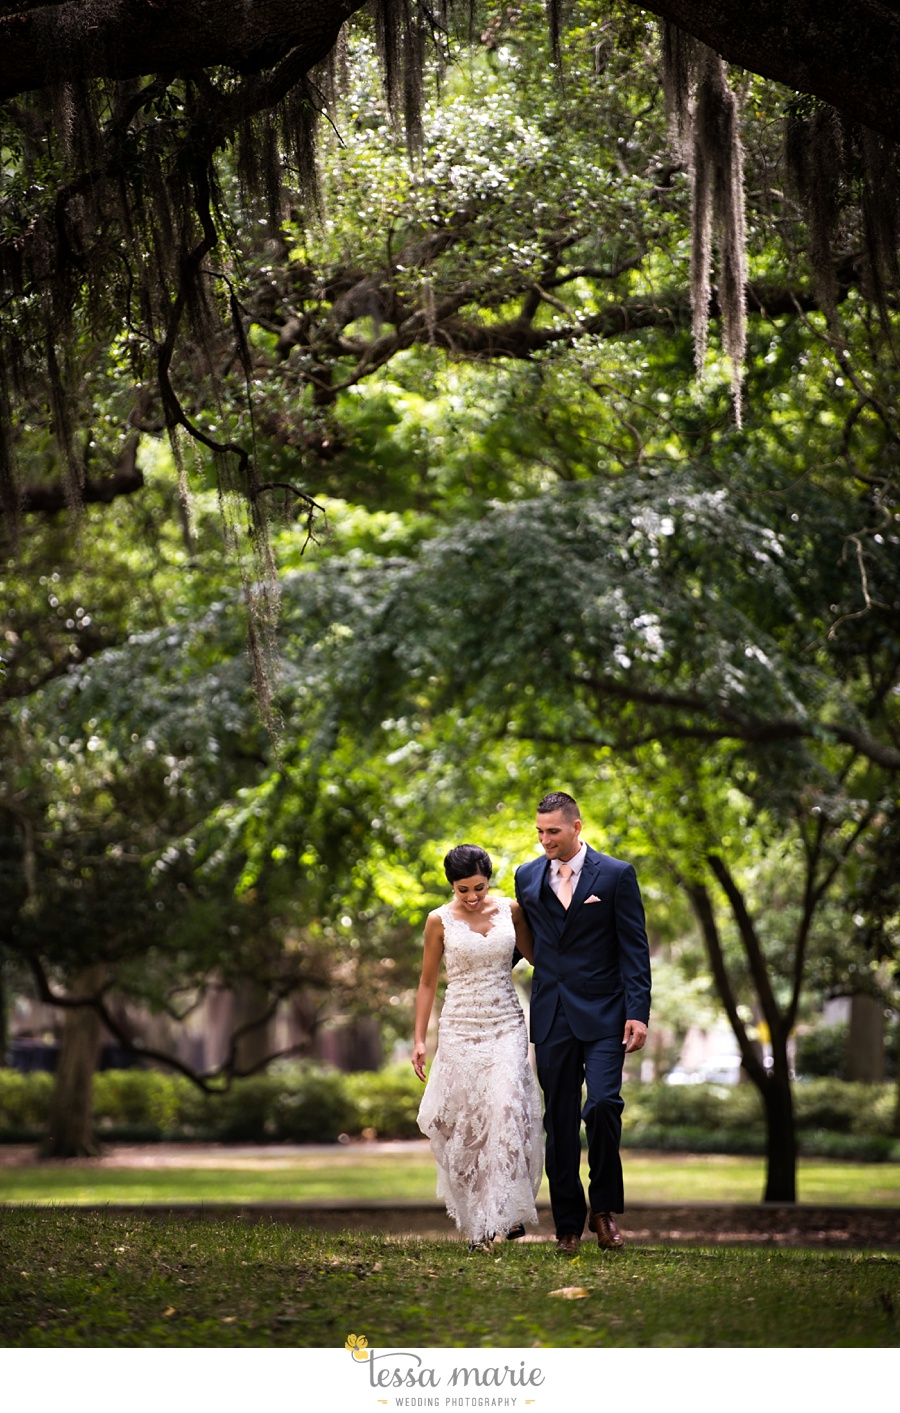 savannah_destination_wedding_photographer_wormsole_elopement_tessa_marie_weddings_essence_of_australia_gown_0047